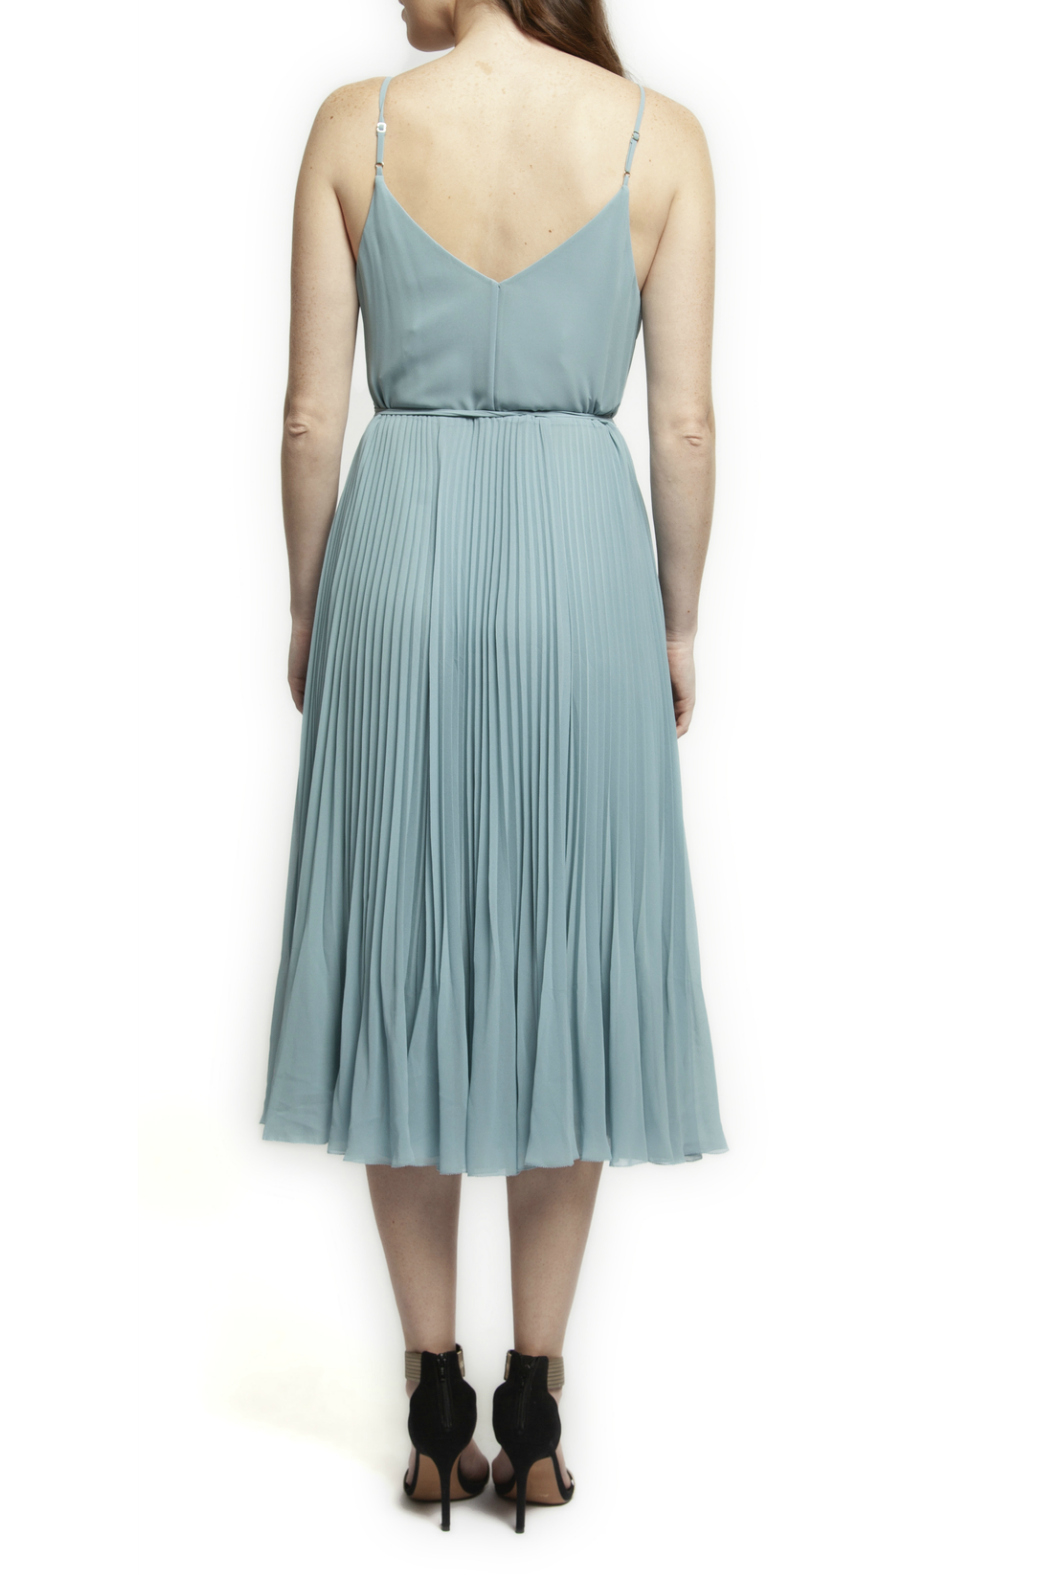 Black Tape/Dex Thin Strap Pleated Dress - Front Full Image